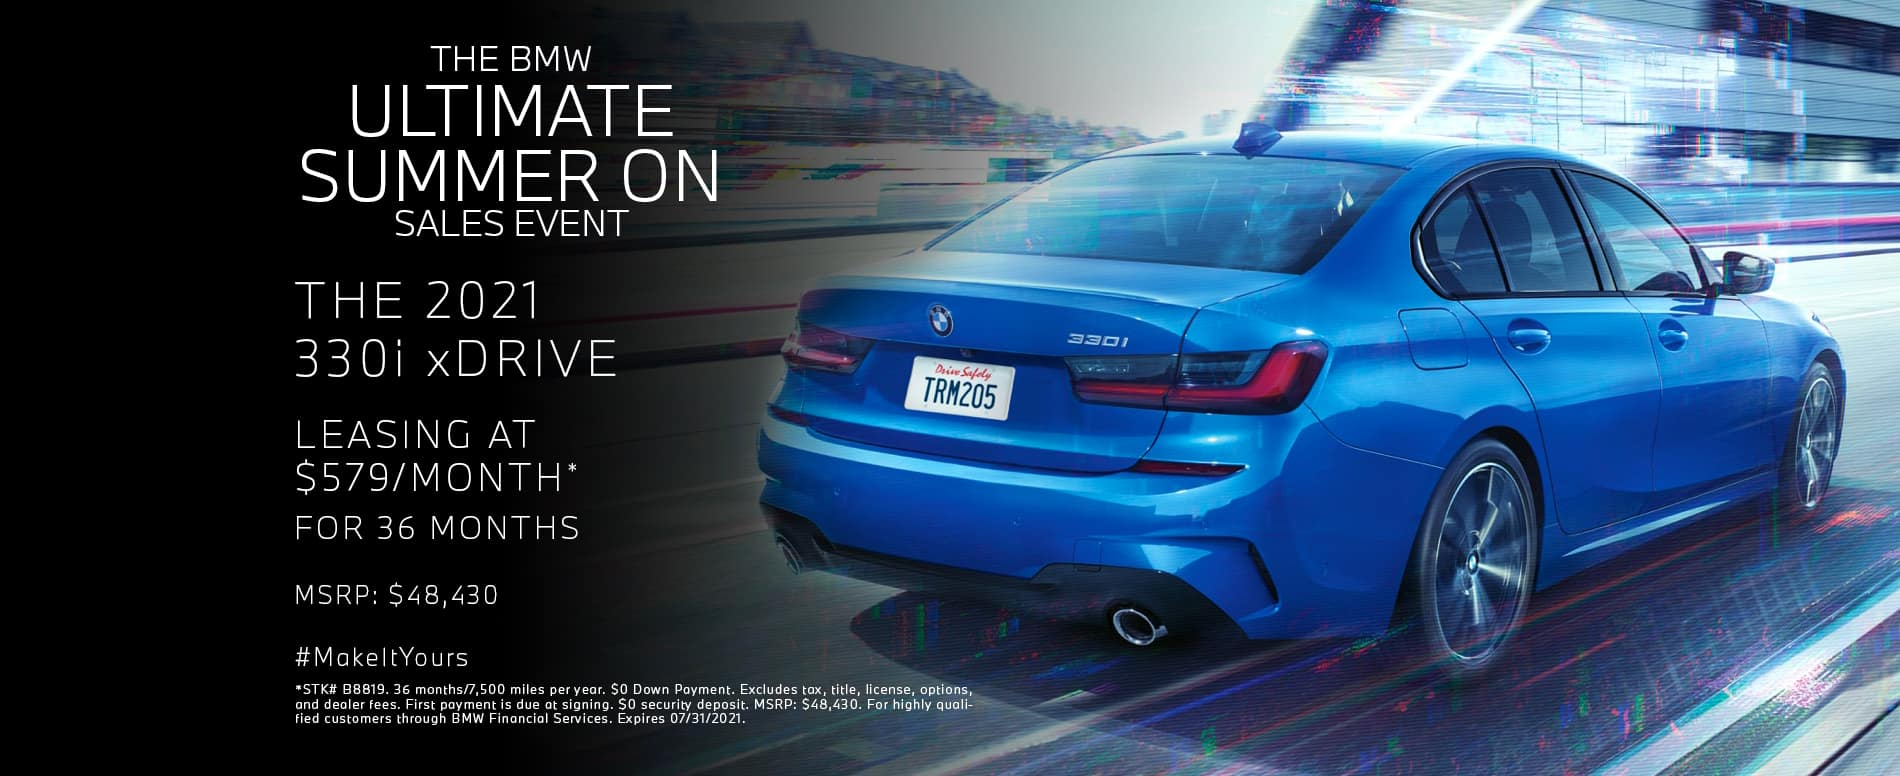 Lease a new 2021 330i xDrive for $579/mo